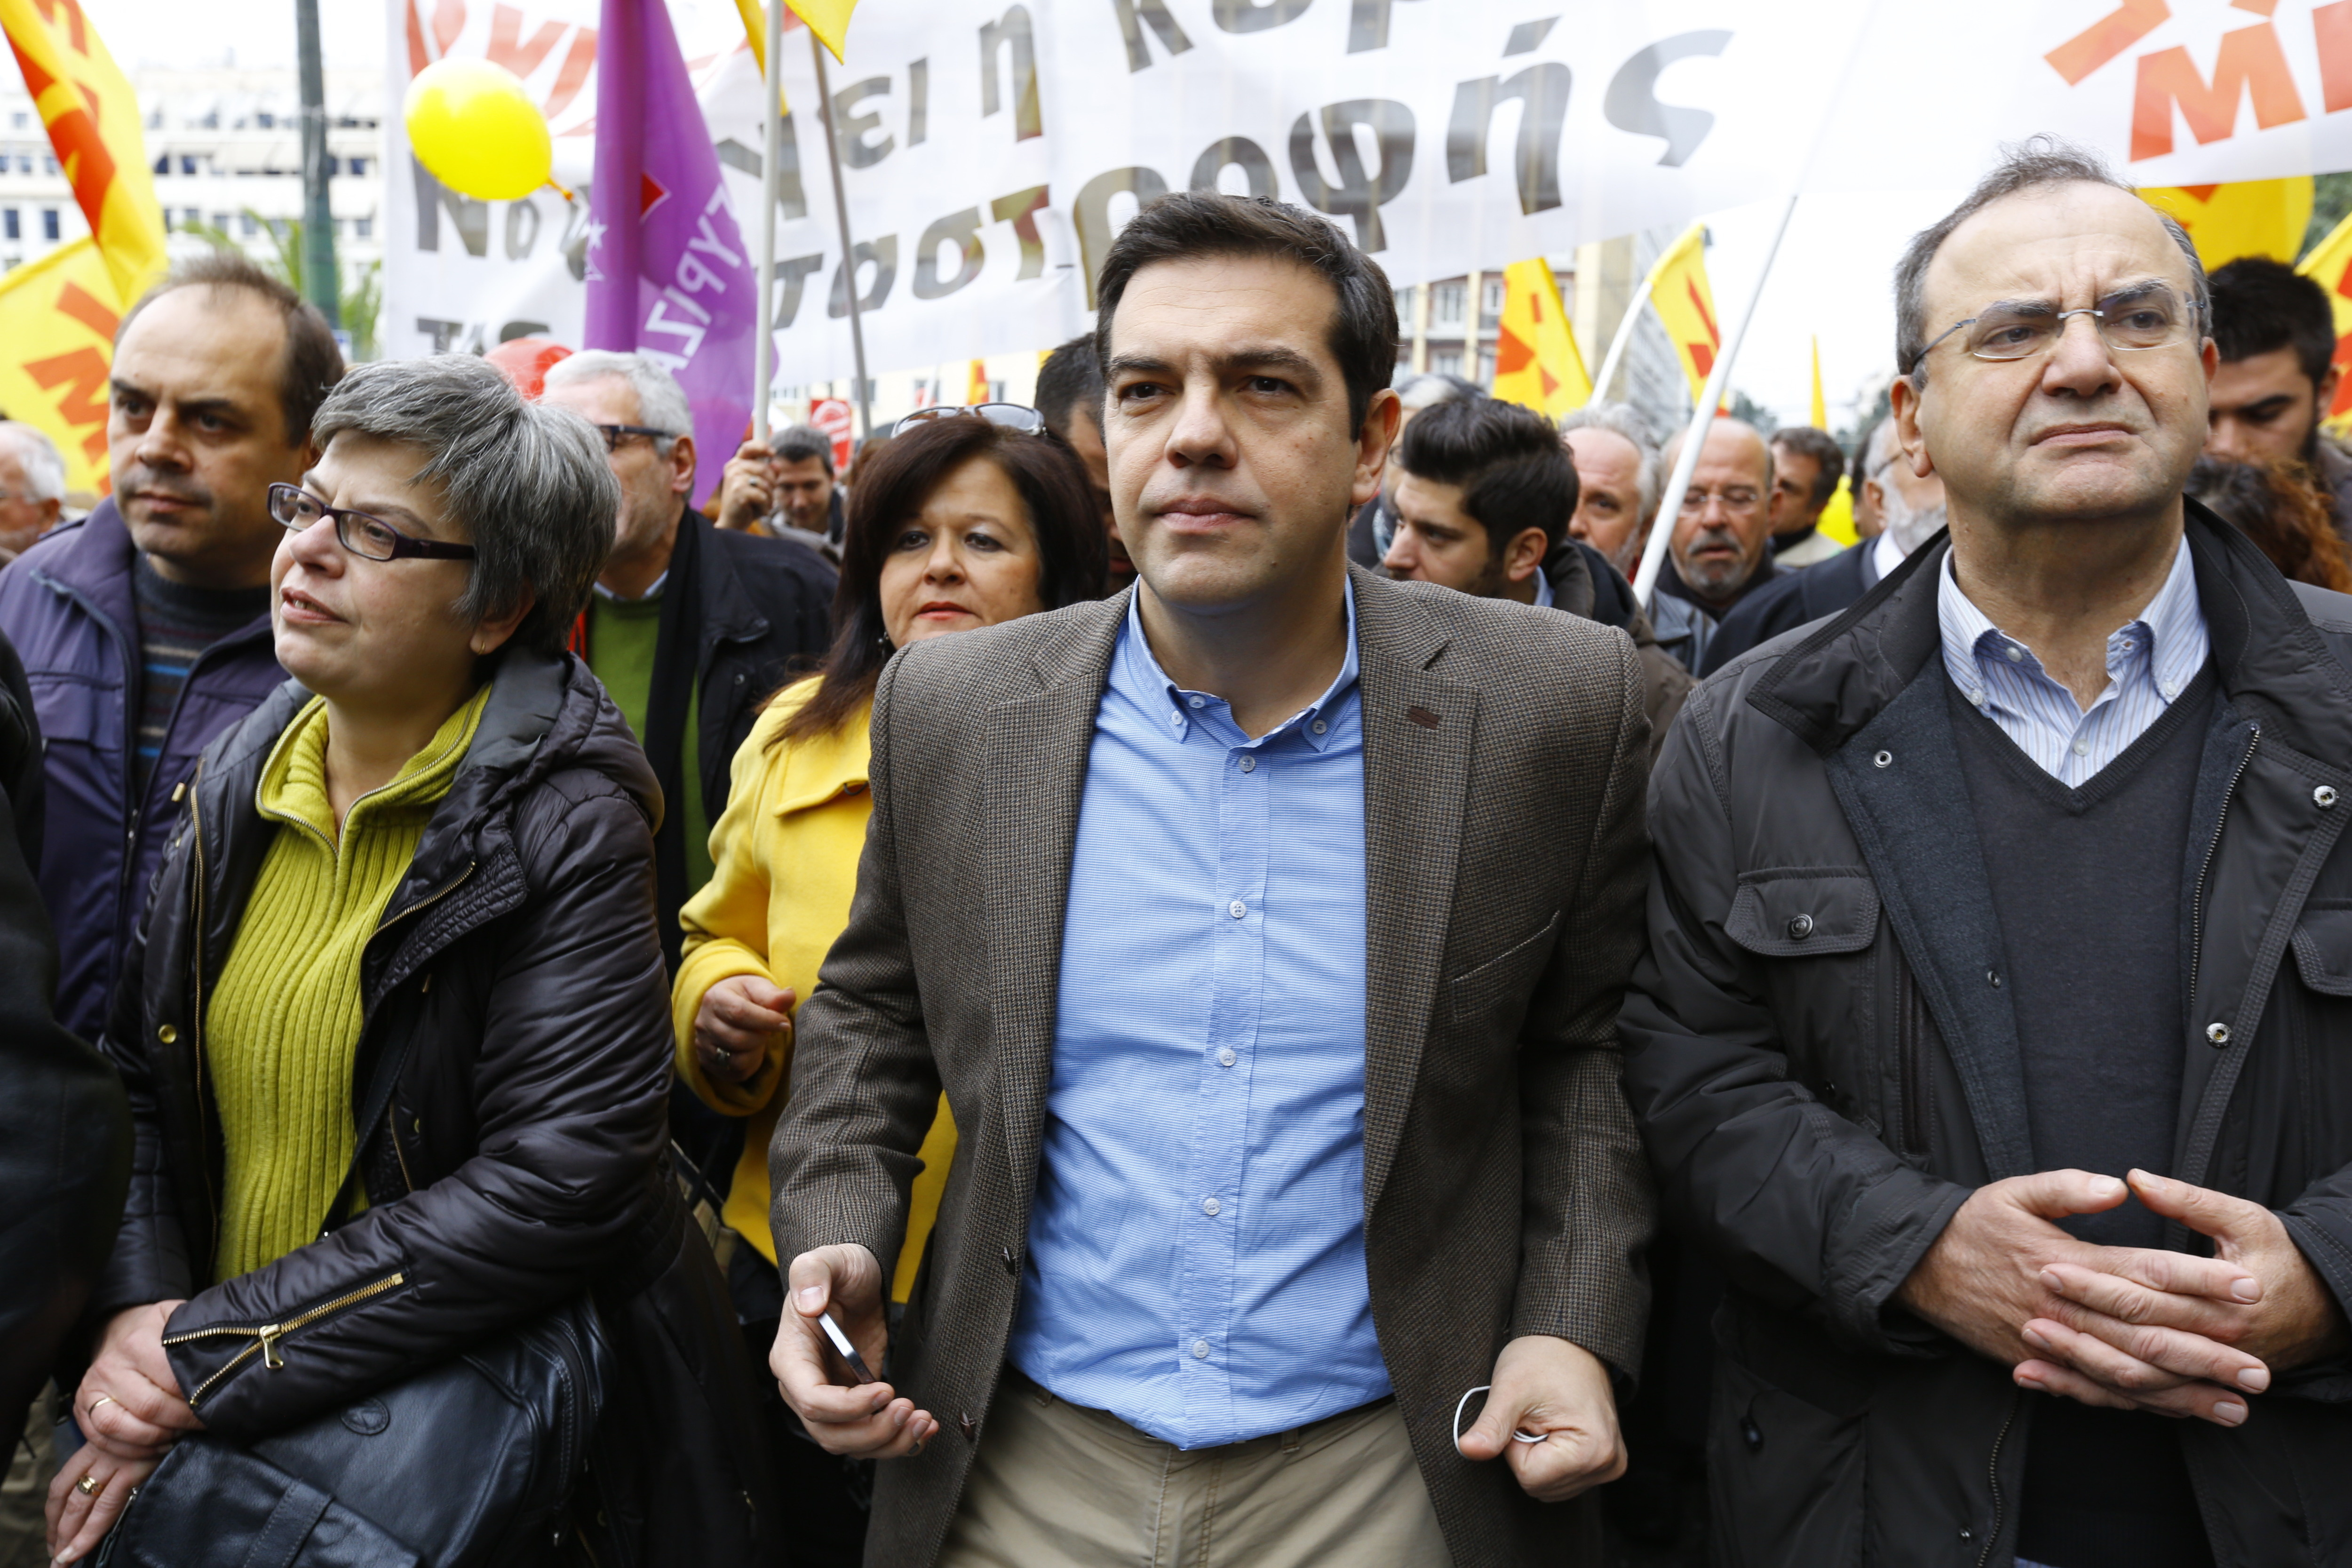 Alexis Tsipras, the leader of SYRIZA (Coalition of the